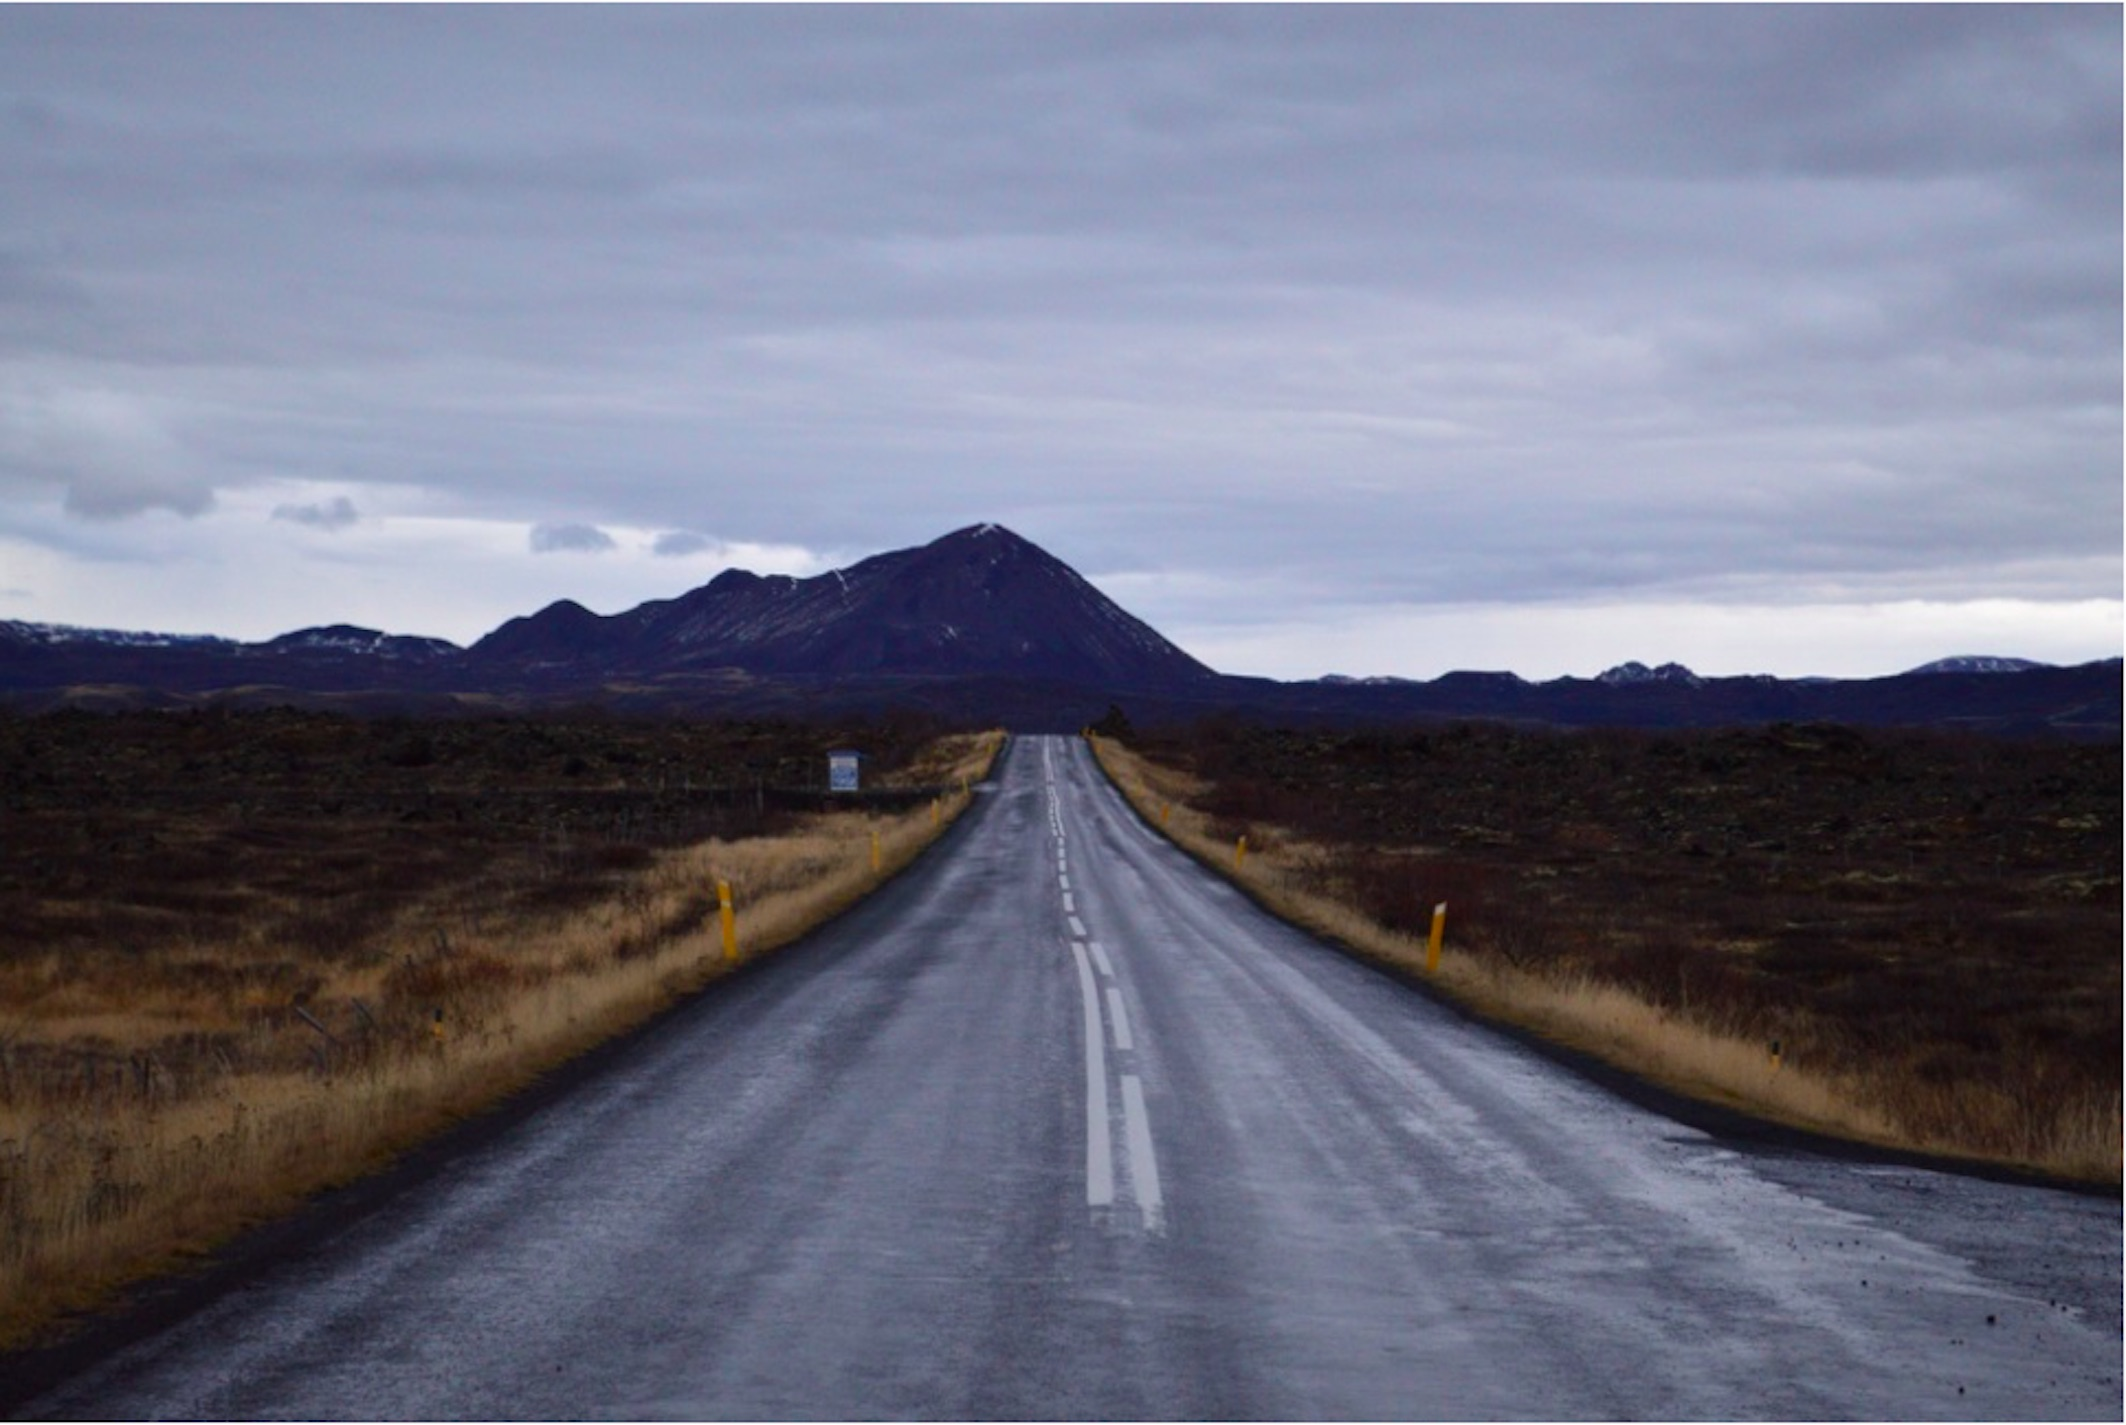 The Ring Road at the turnoff to Dimmuborgir.